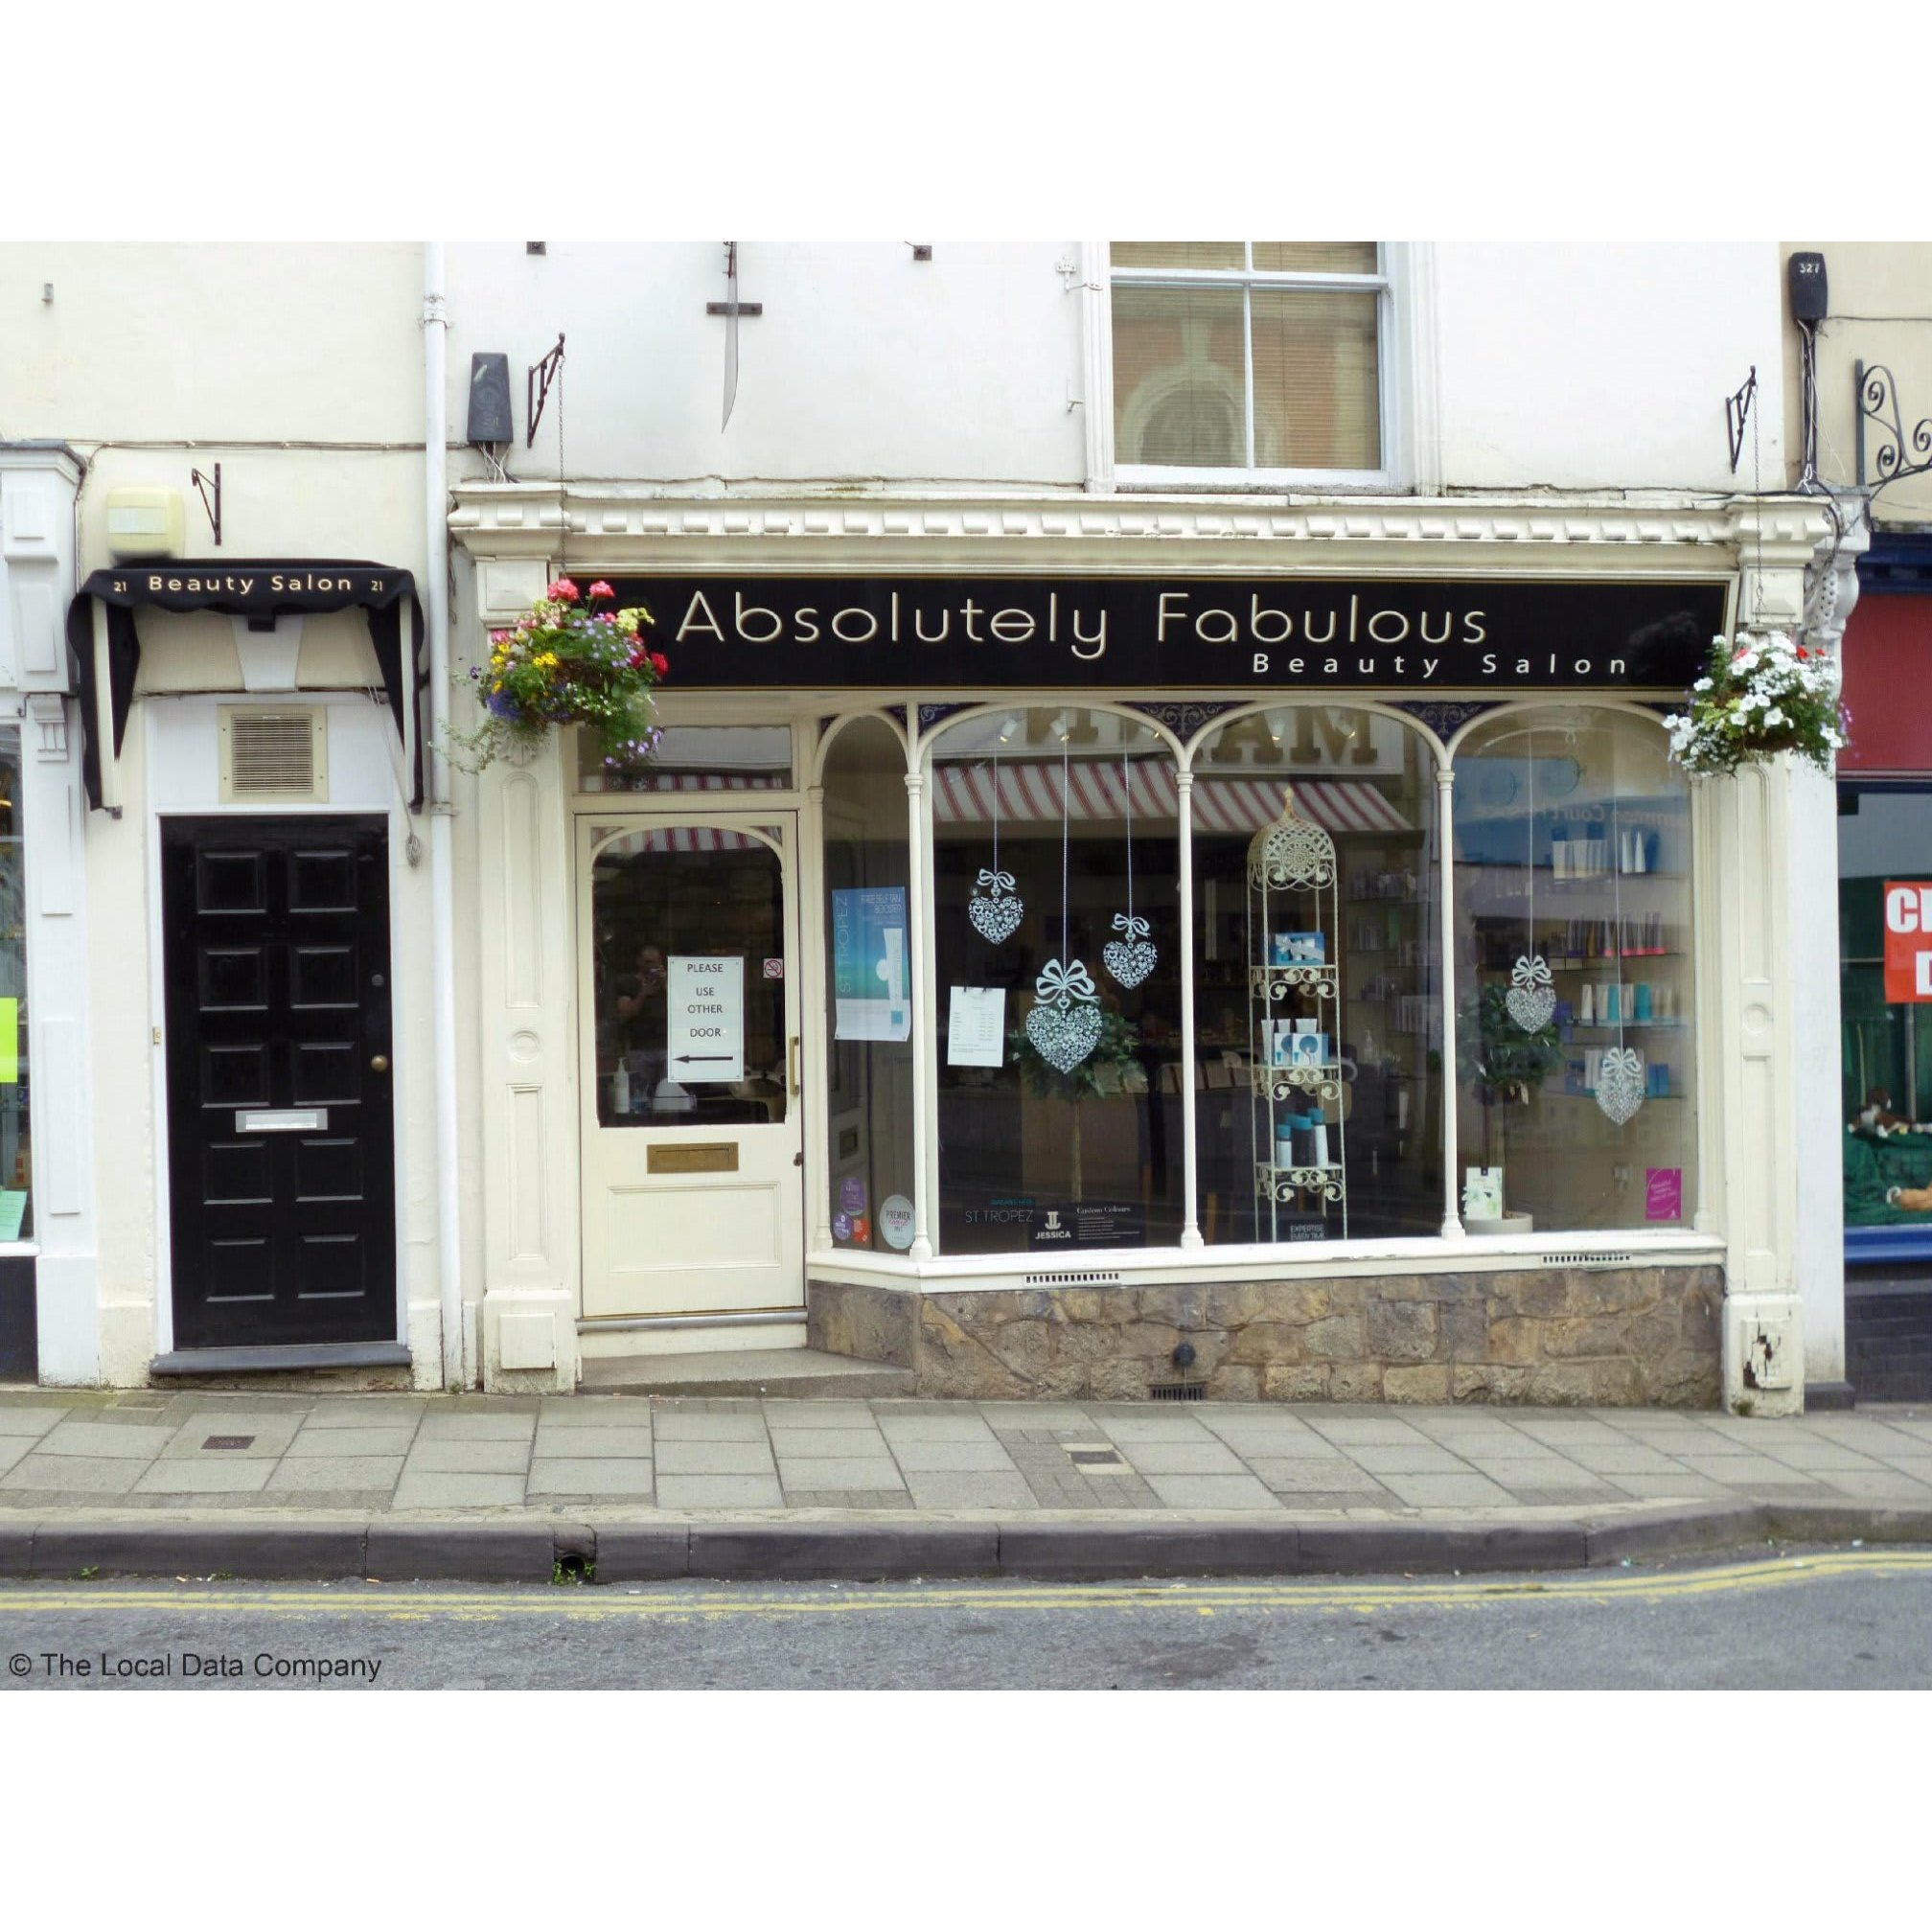 Absolutely fabulous stroud beauty salons my local for Absolutely fabulous beauty salon